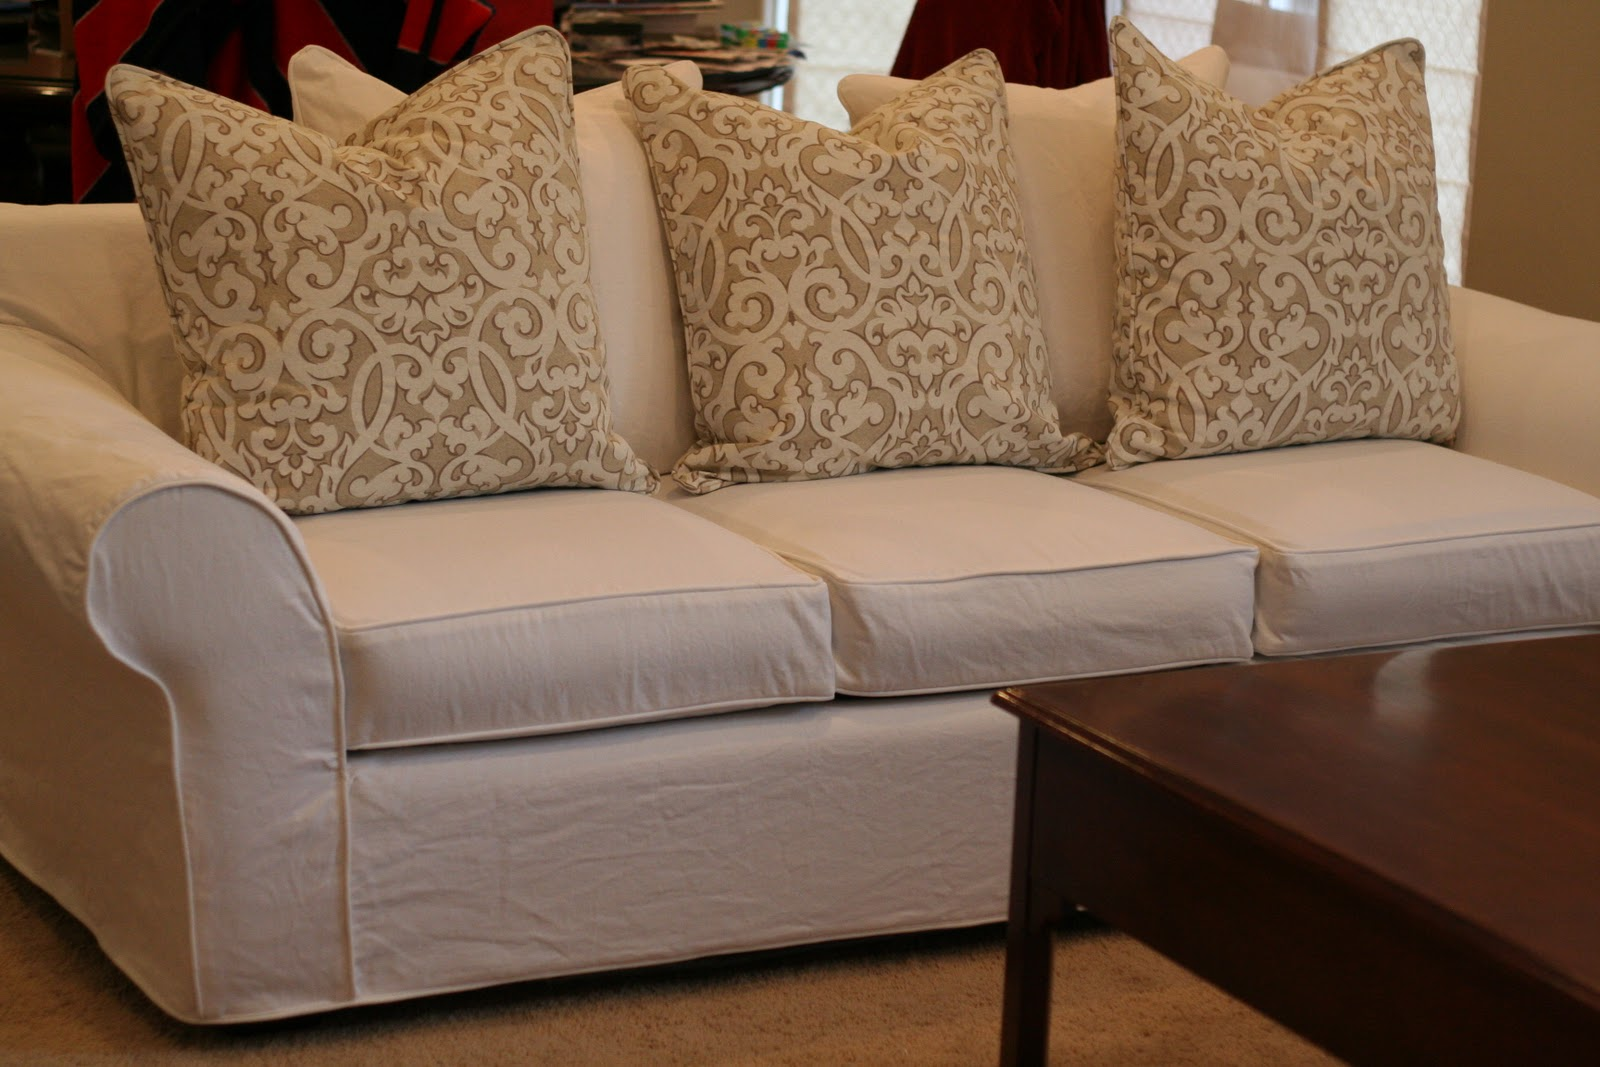 Pillow Back Sofa Slipcovers Cozy Cottage Slipcovers From ...